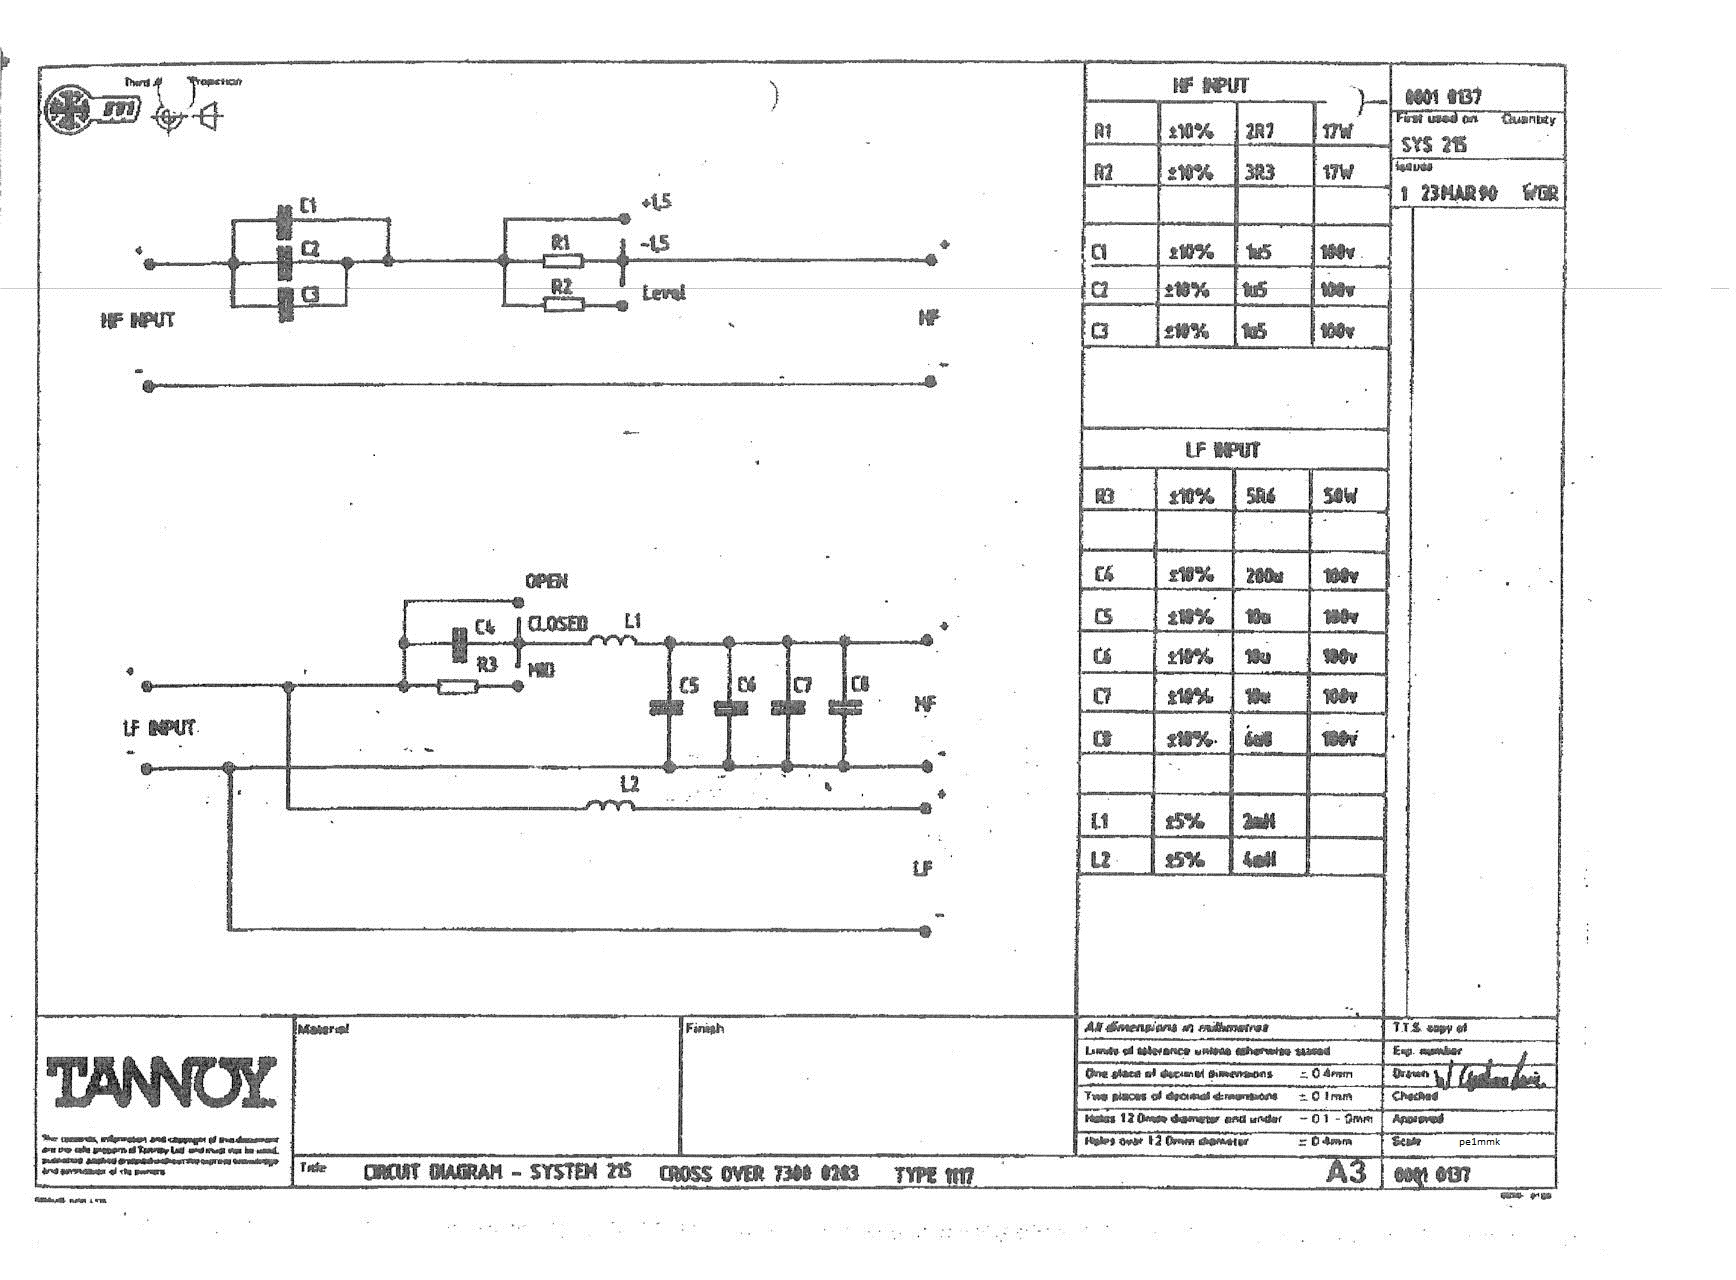 dmt215schematic?resize\=720%2C531 peavey speaker wiring diagram peavey wiring diagrams peavey 410tx wiring diagram at crackthecode.co